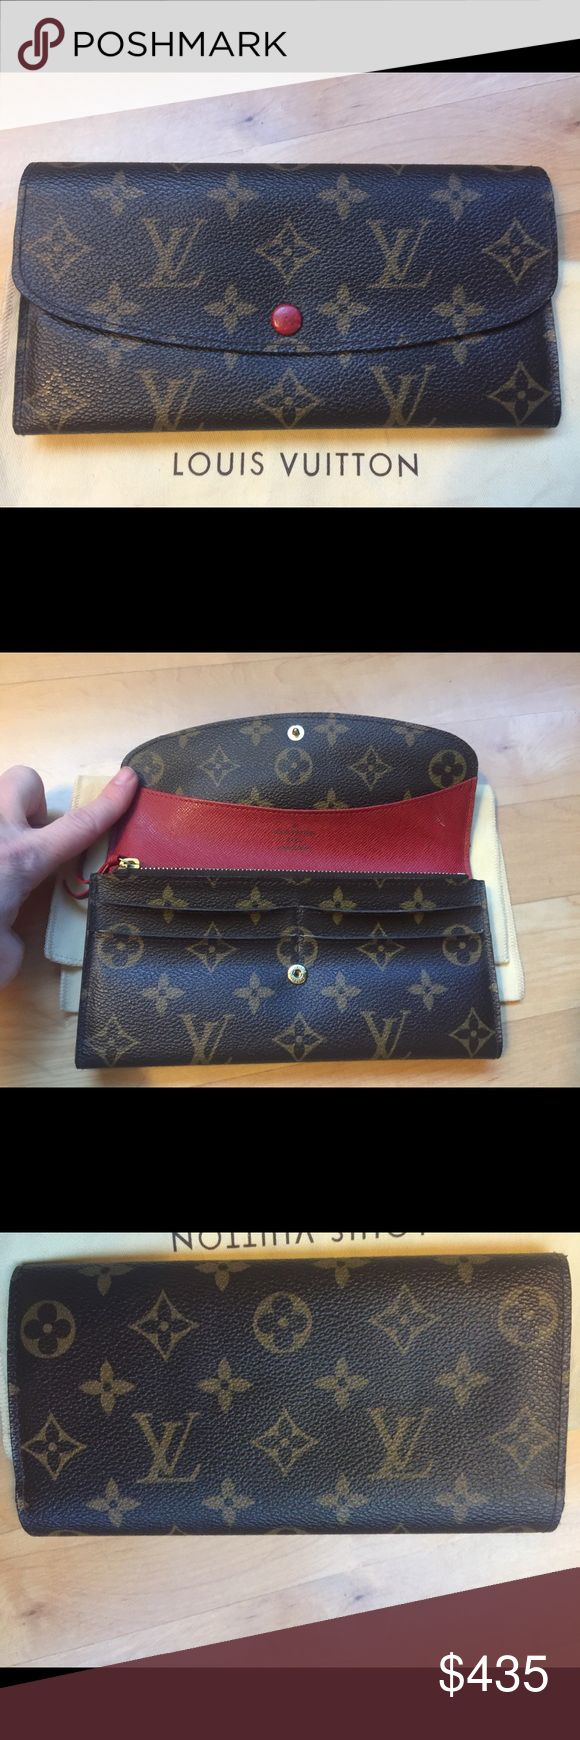 Louis Vuitton Emilie Wallet Authentic Louis Vuitton Emilie Wallet with red interior. 4 card slots zipped coin pouch,two bill compartments. Red button in front is just slightly marked up. Card slots are a touch bent as seen in photo. Made in Spain #CA0110. Purchased in Los Angeles. No trades Louis Vuitton Bags Wallets